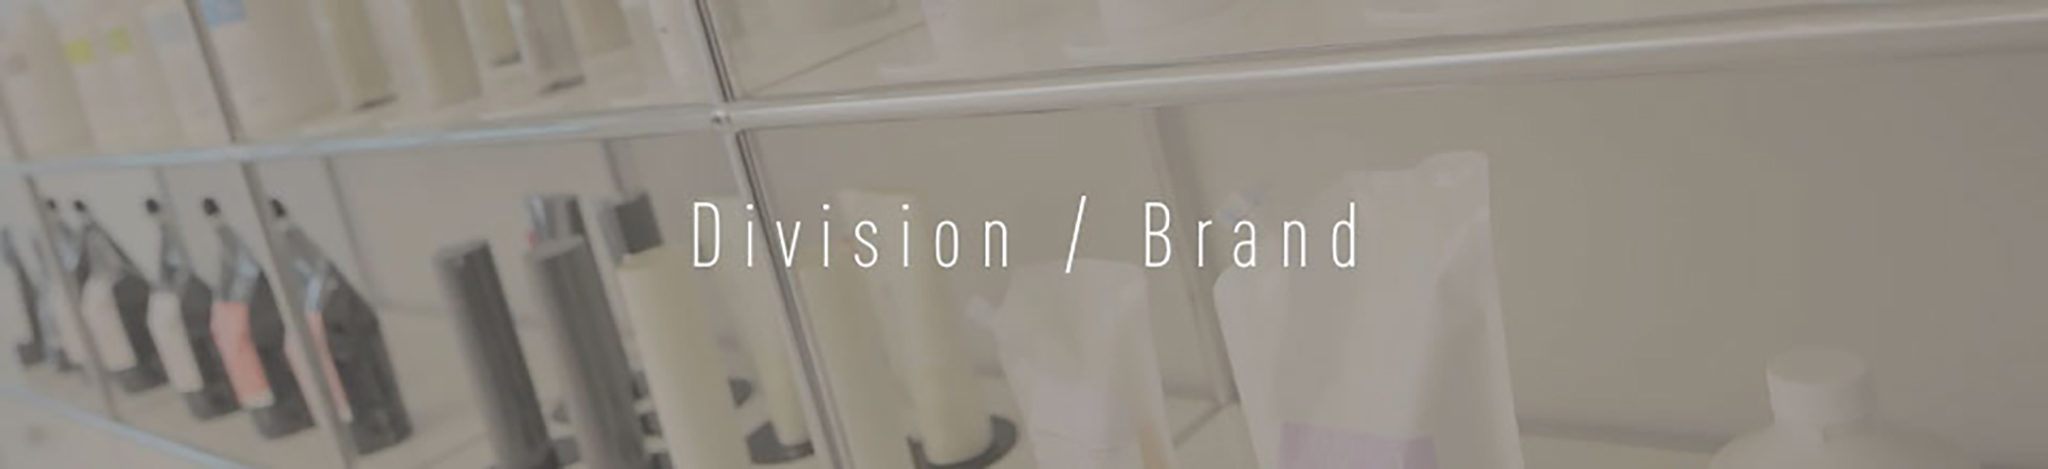 Division / Brand